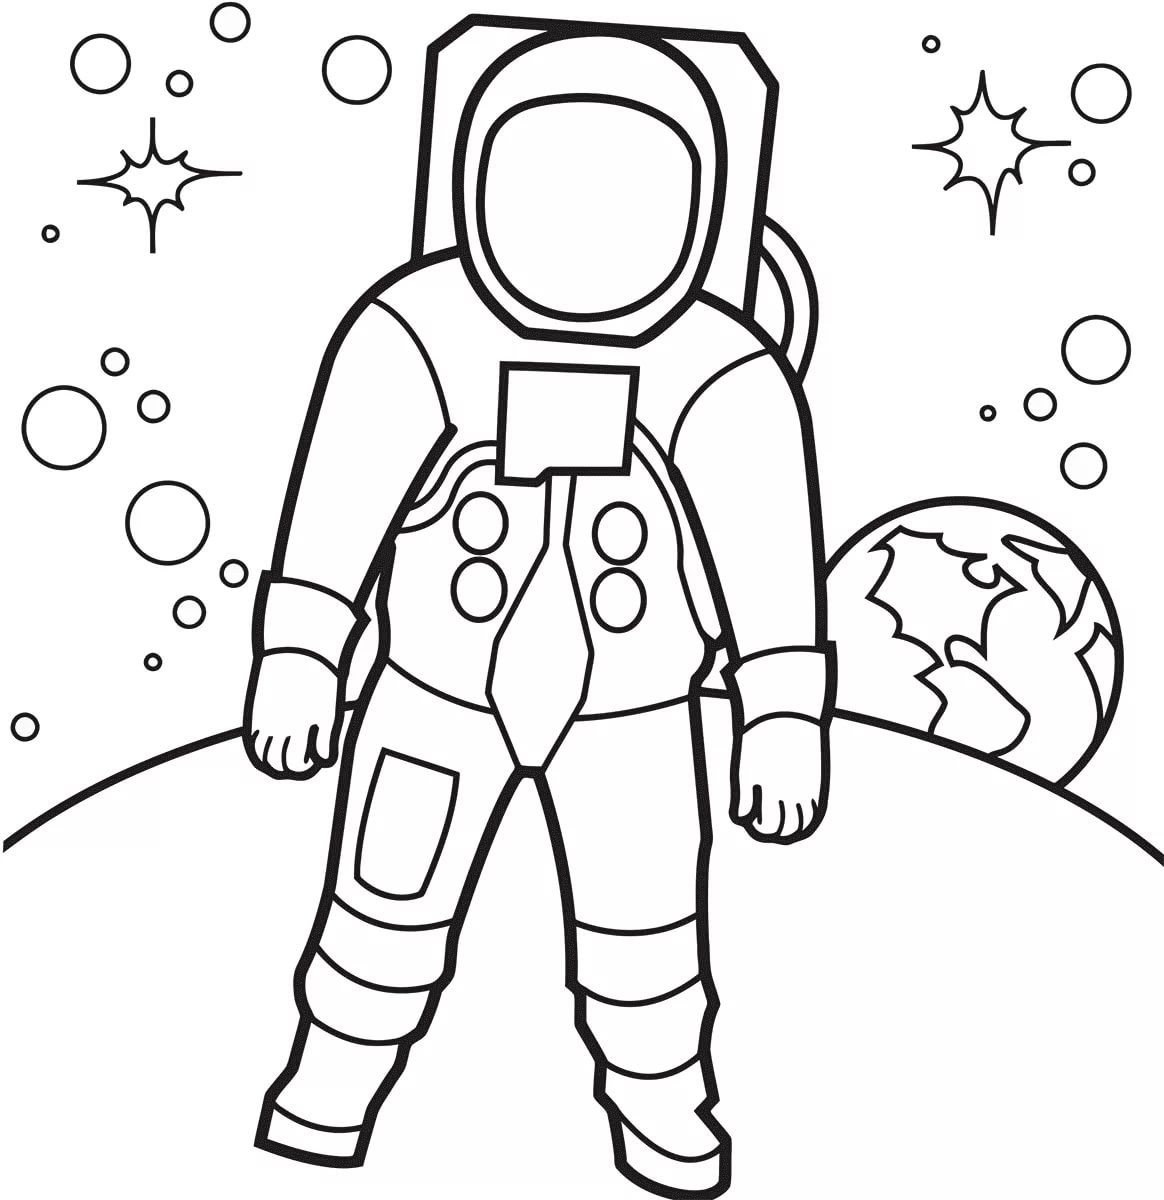 astronaut grabbing a star coloring page free printable - 842×842